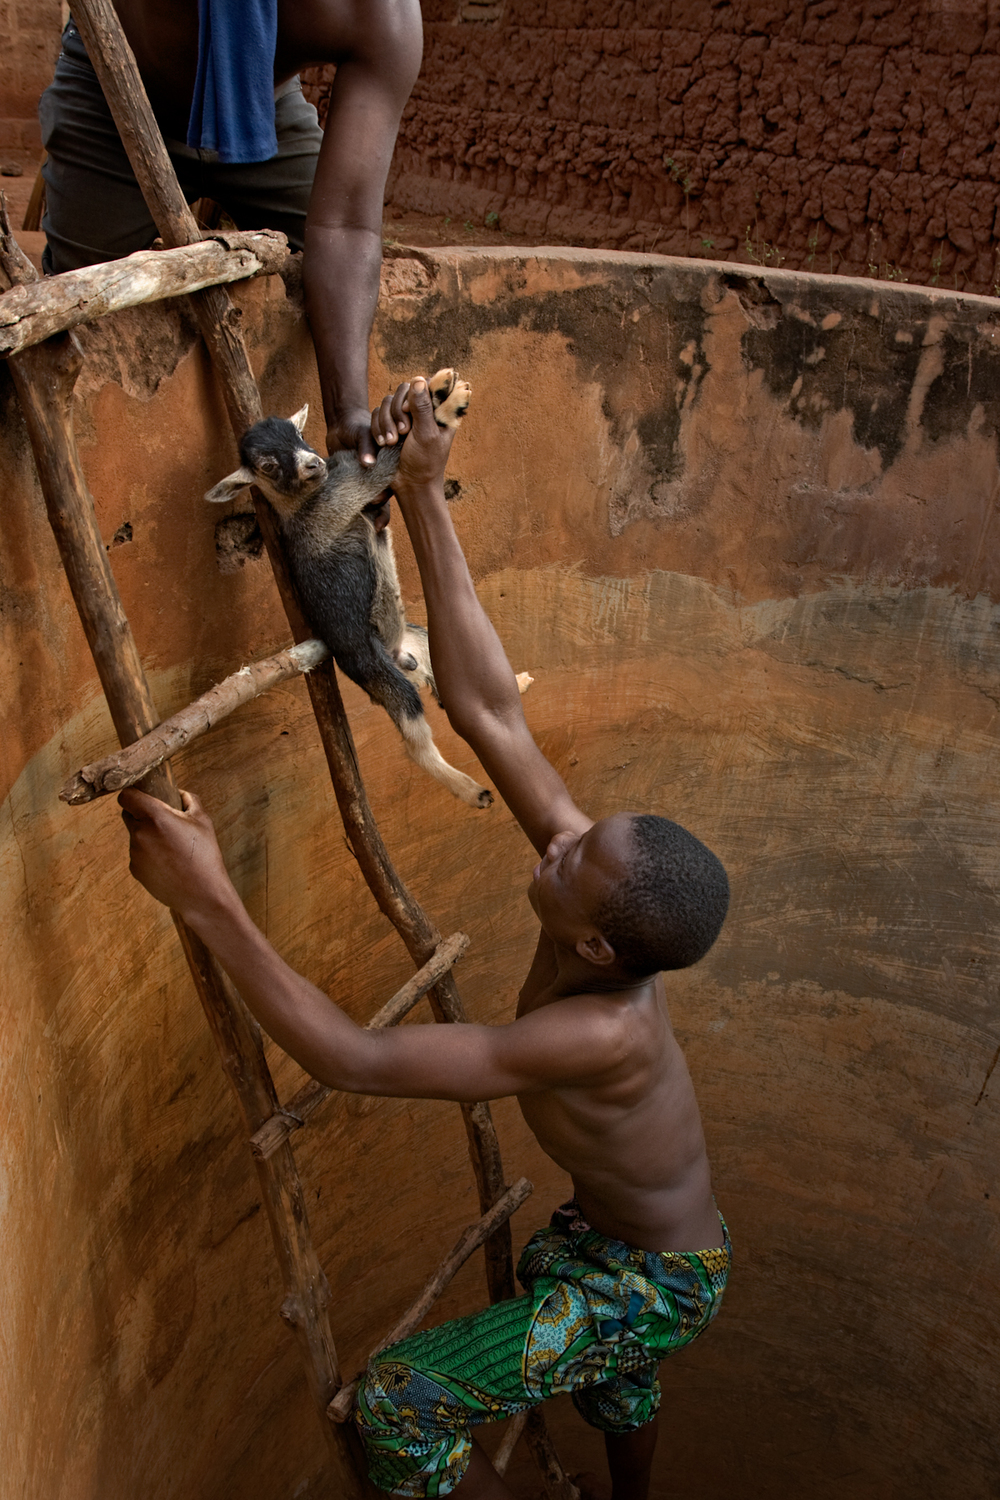 Rescuing a baby goat from the dry well, Ketou.